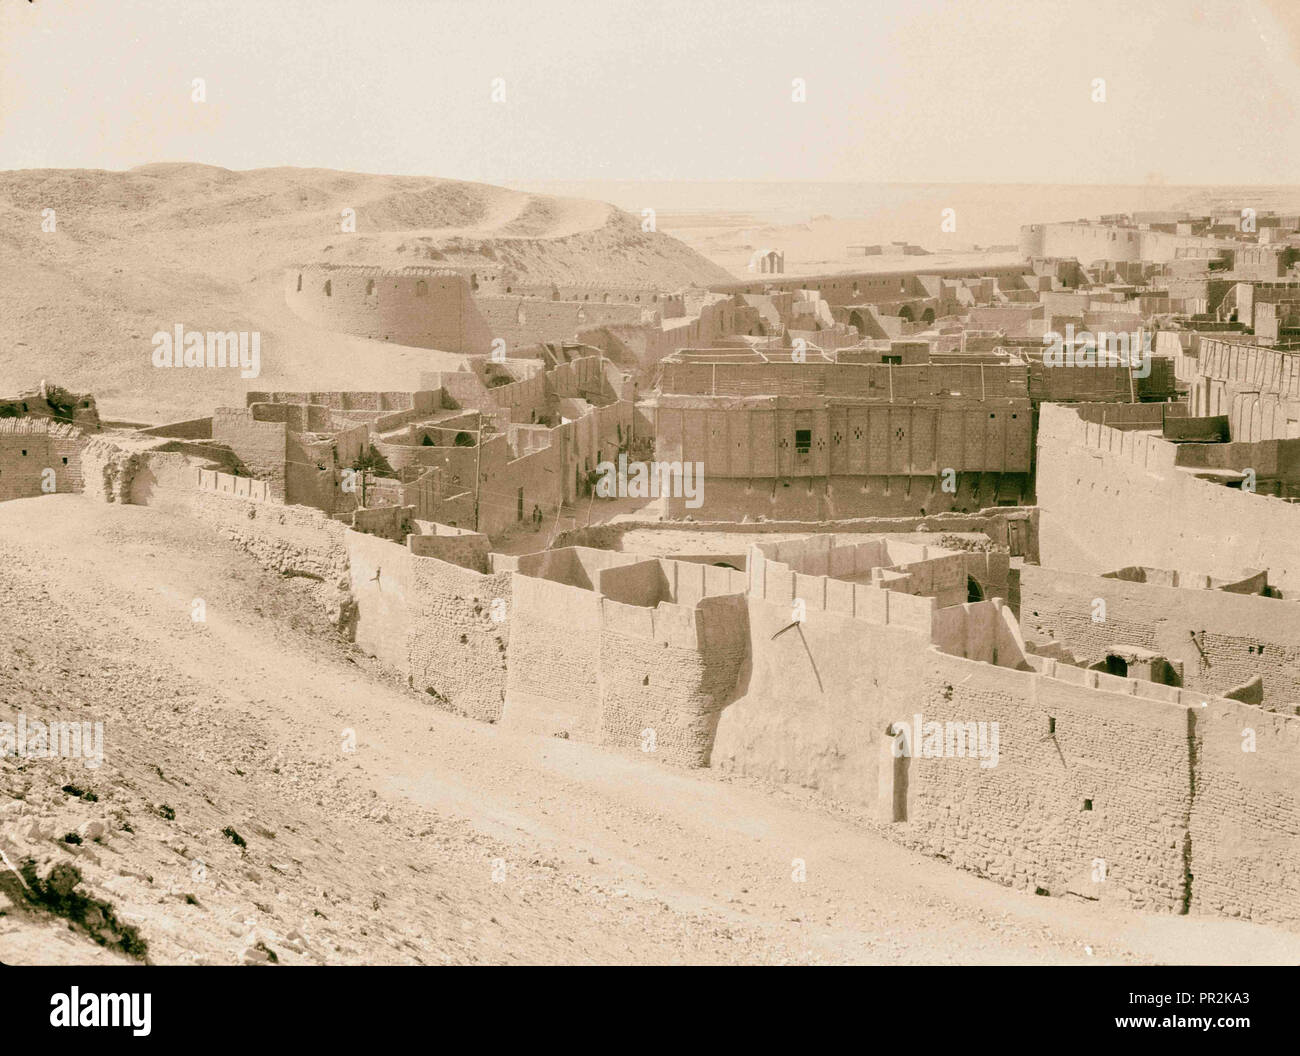 Iraq. Nejaf. First sacred city of the Shiite Moslems [i.e., Muslims]. Ramparts and section of the city. Surrounded by endless - Stock Image